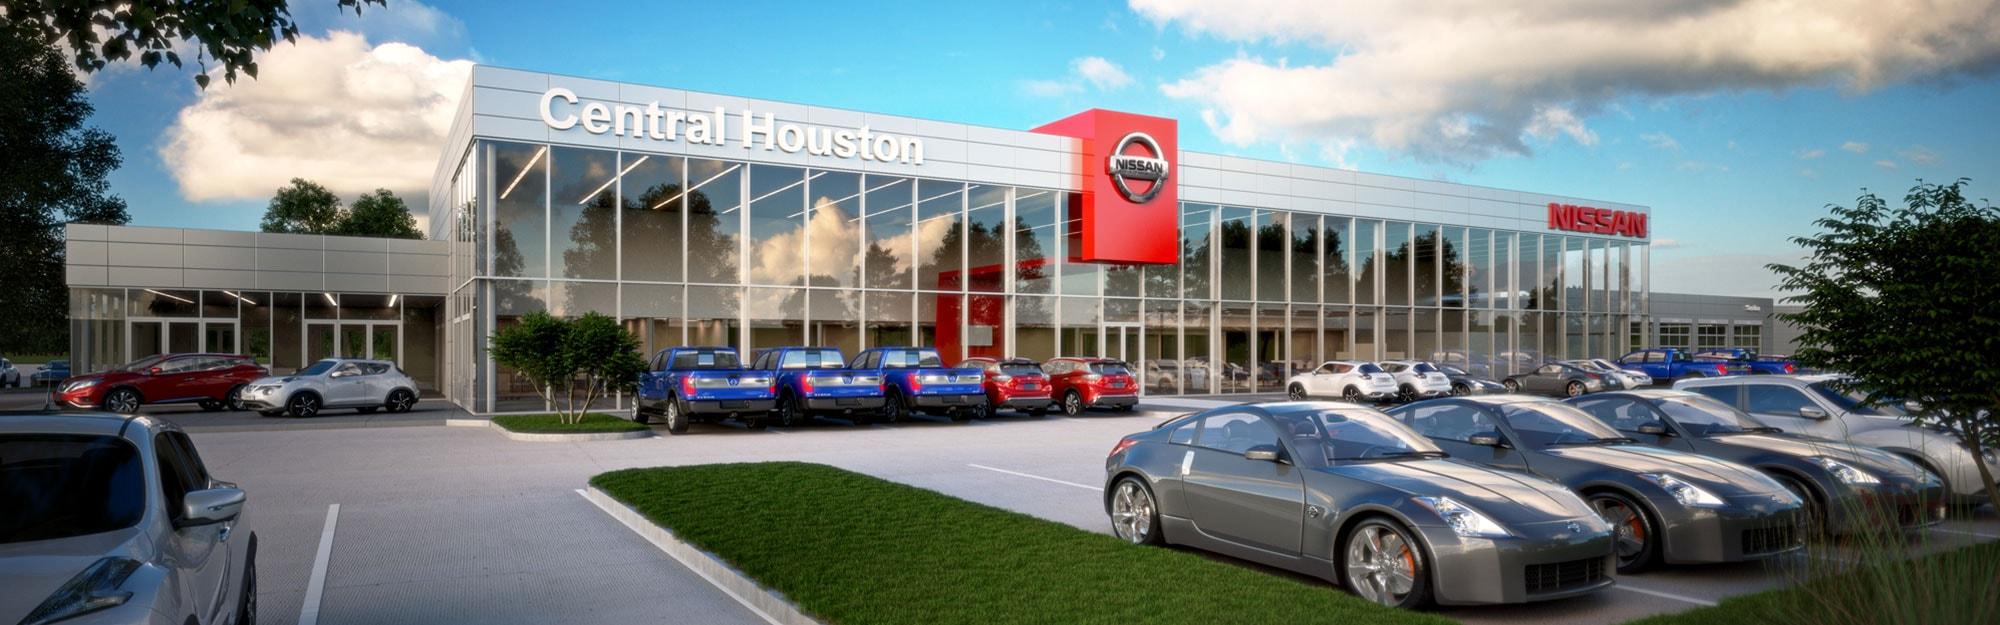 new nissan vehicles for sale in houston central houston autos post. Black Bedroom Furniture Sets. Home Design Ideas